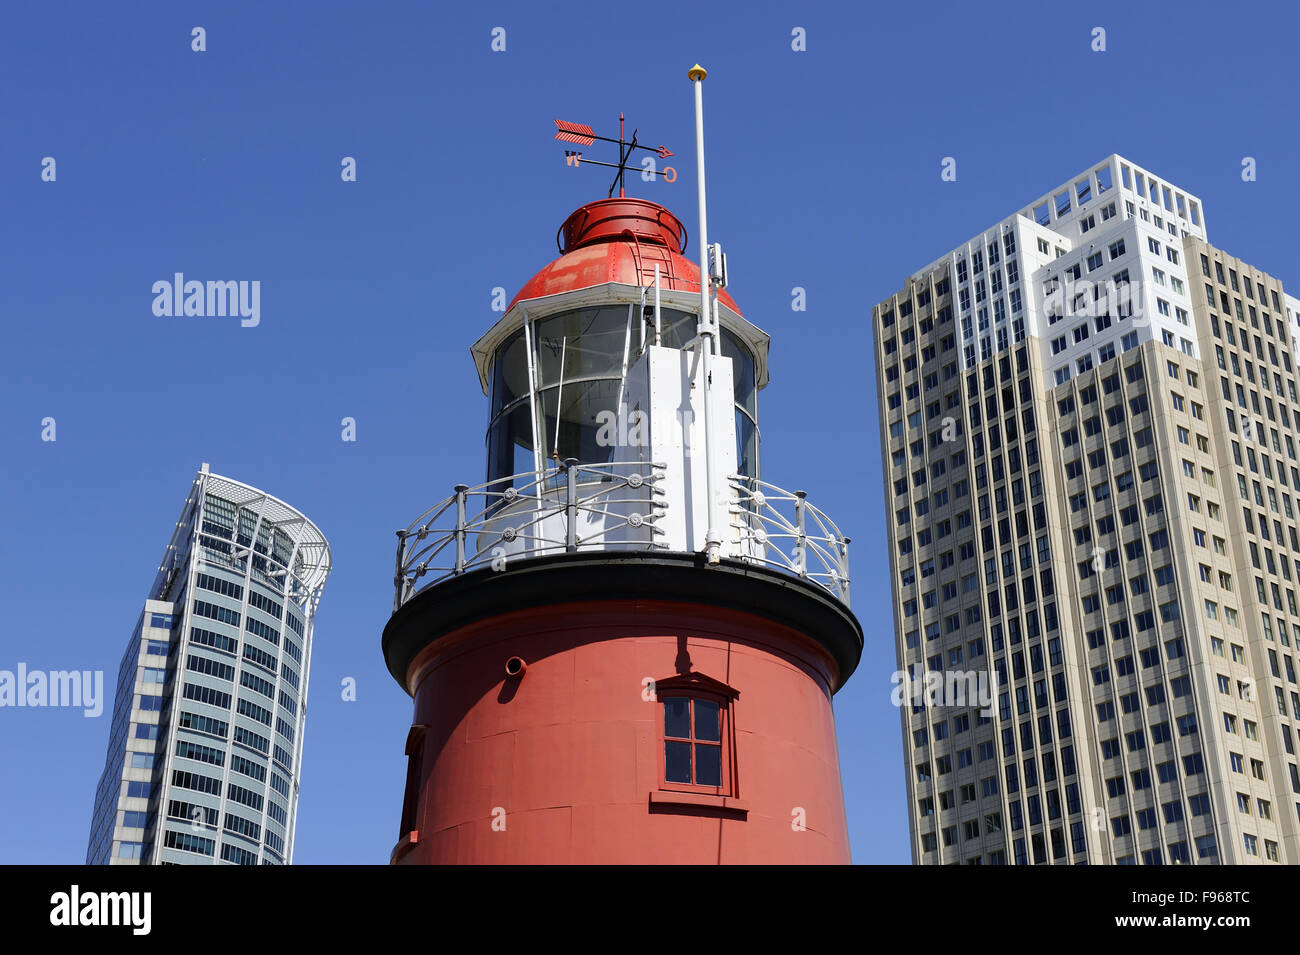 Lighthouse between two sky scrapers against clear blue sky - Stock Image